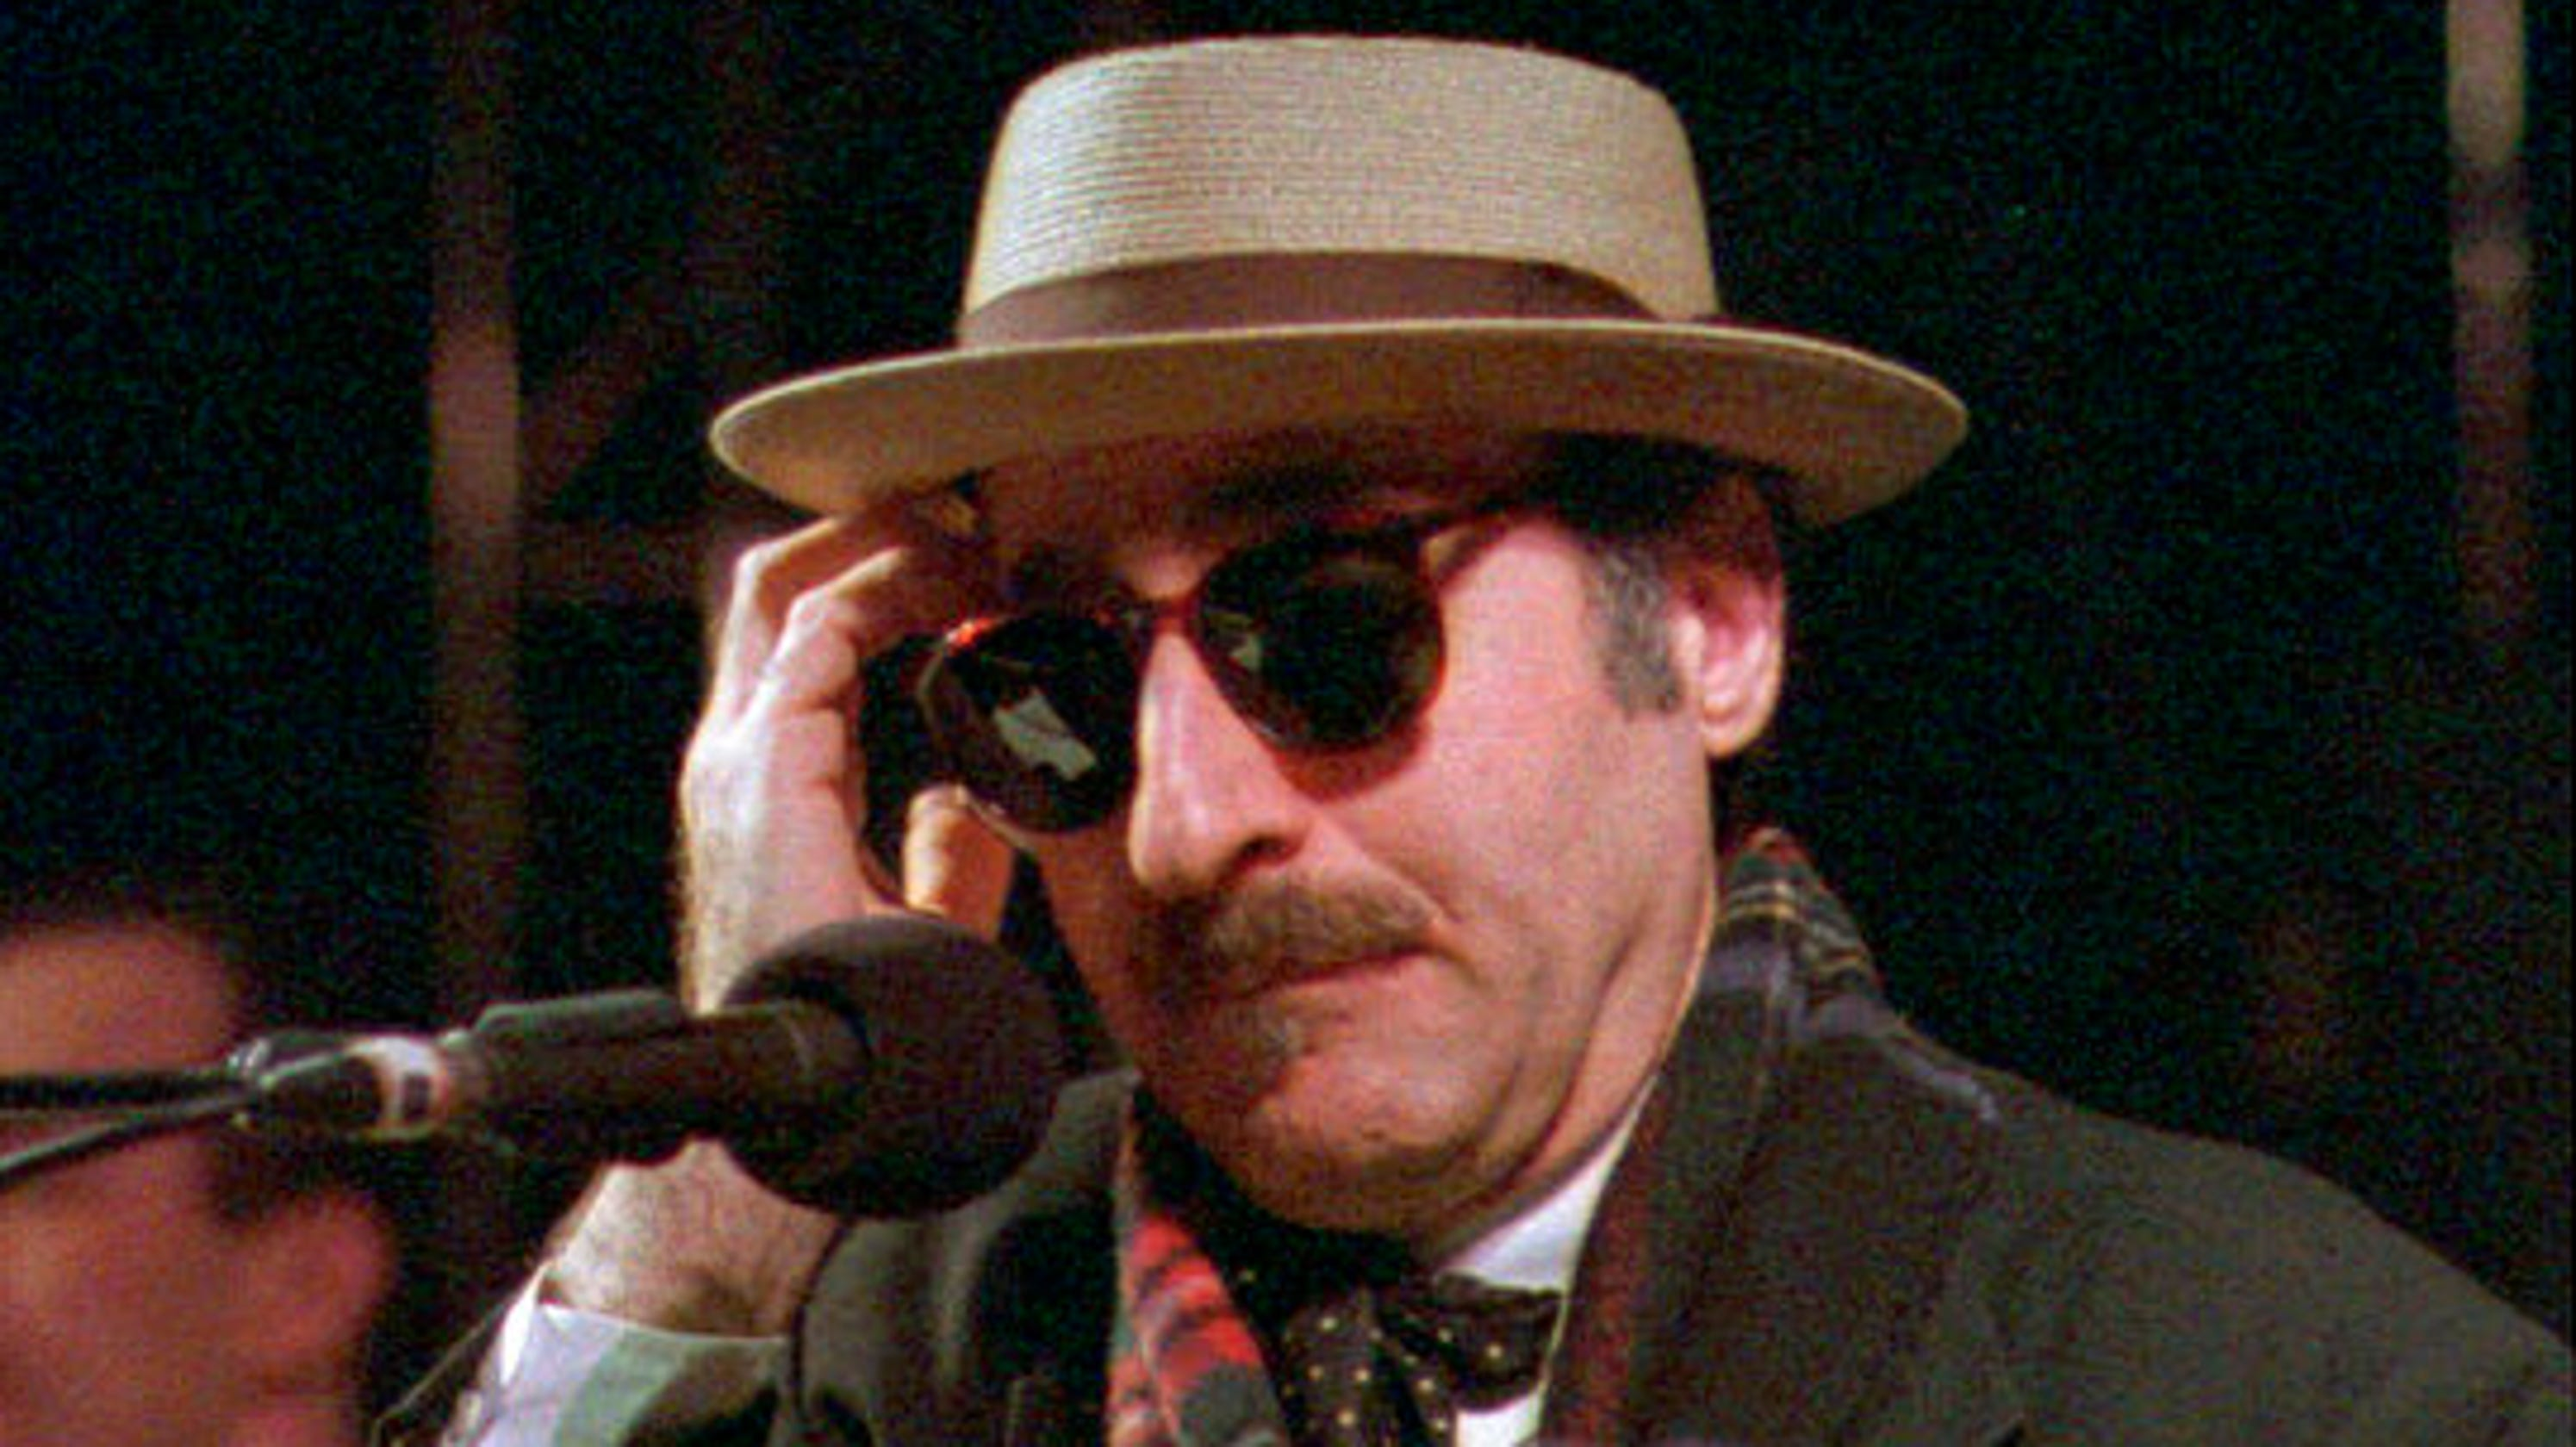 Leon Redbone, Acclaimed 1970s Musician, Dies